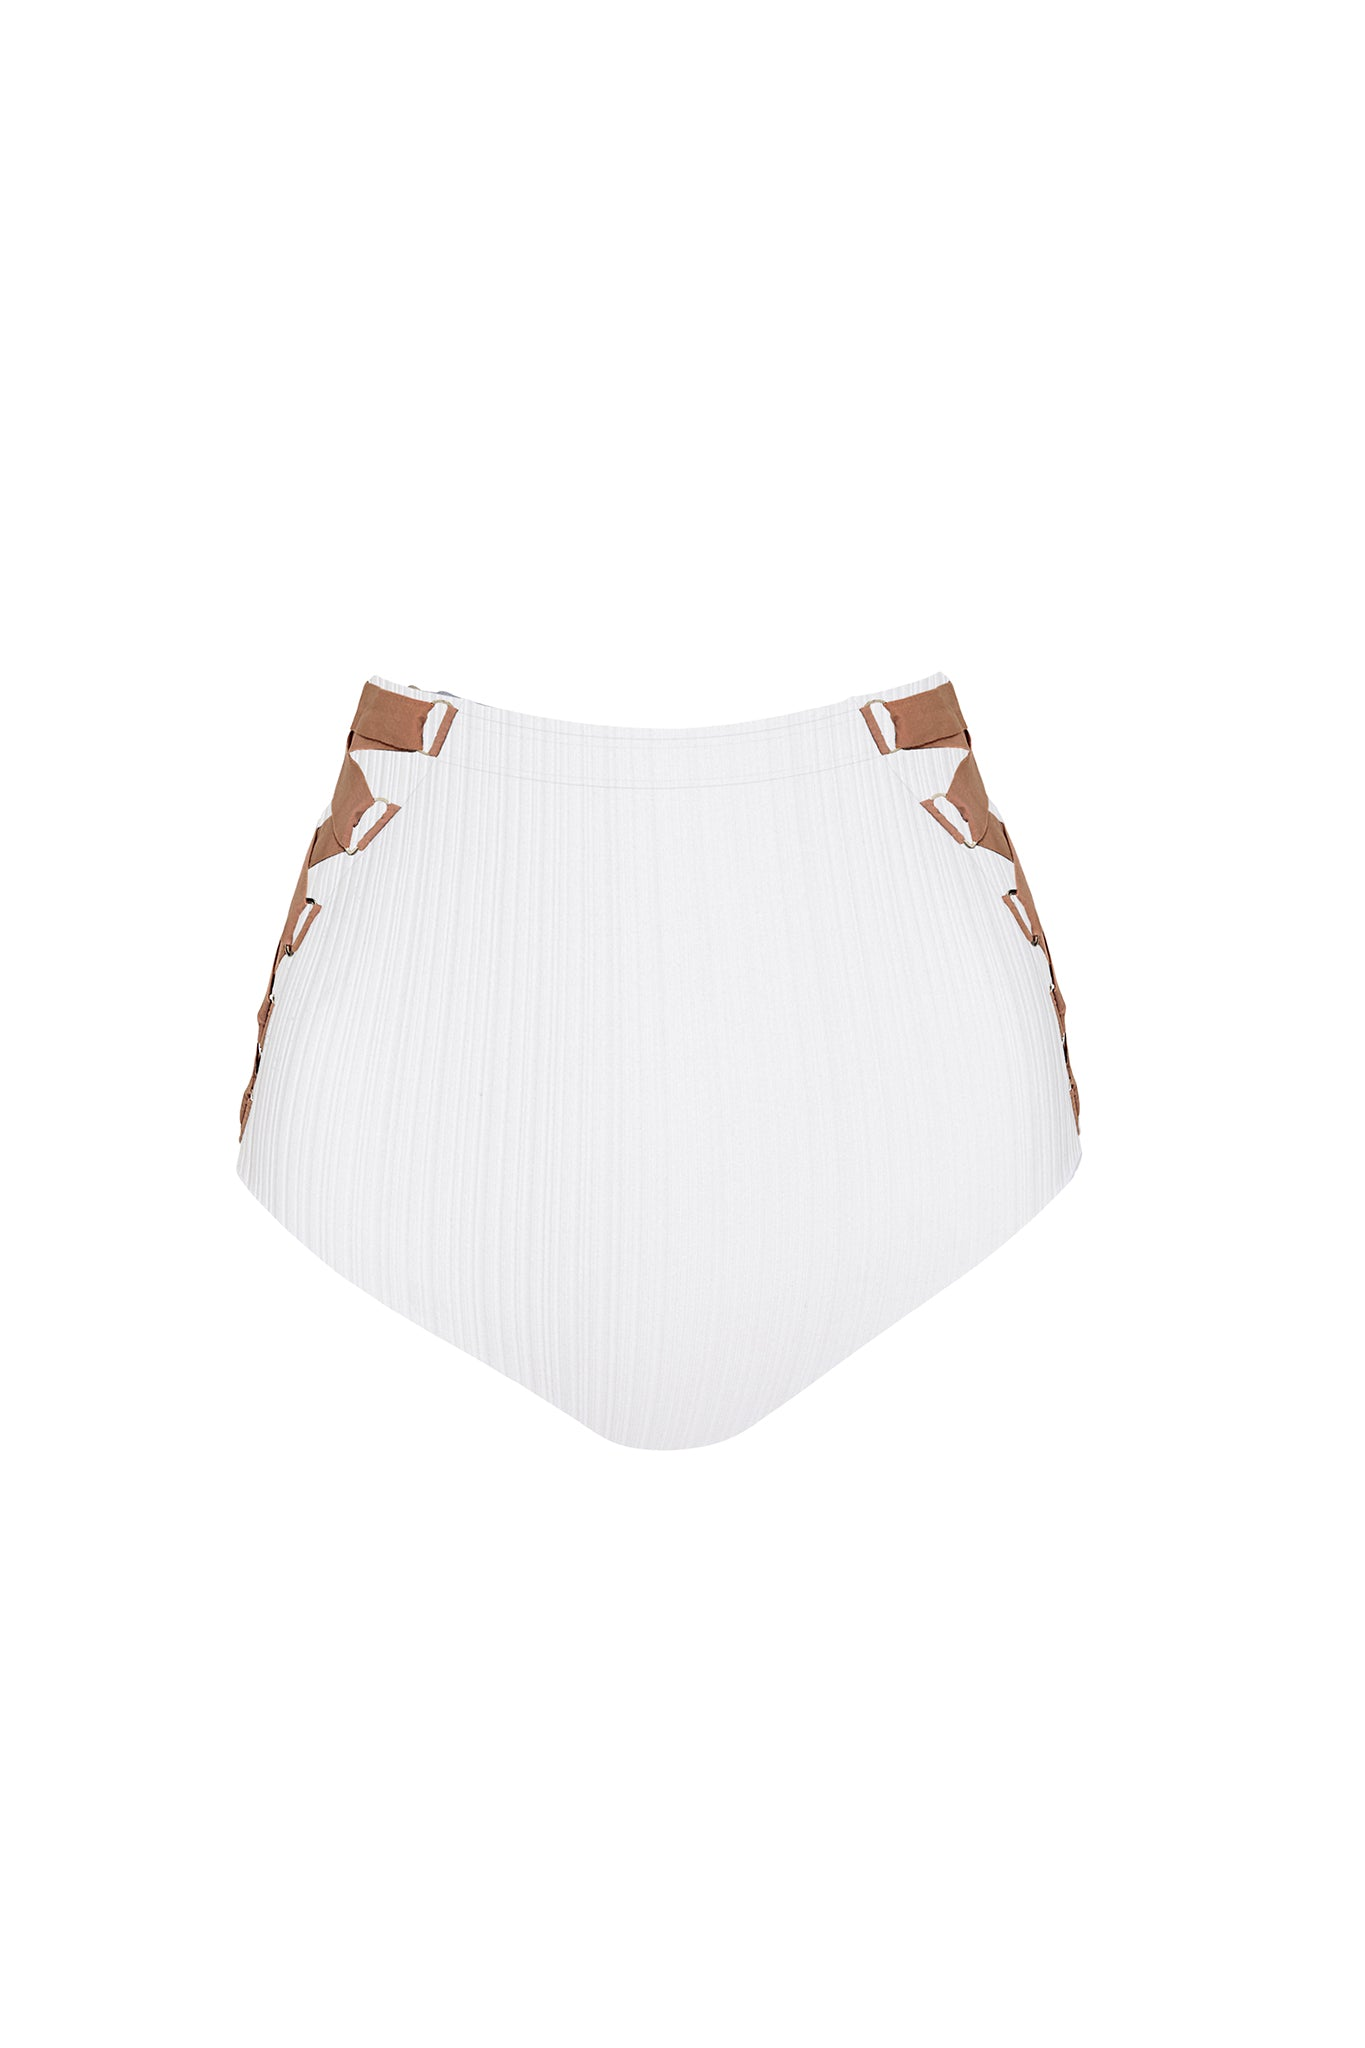 Riley Lace-up Highwaist Bottom in White Ribbed Fabric